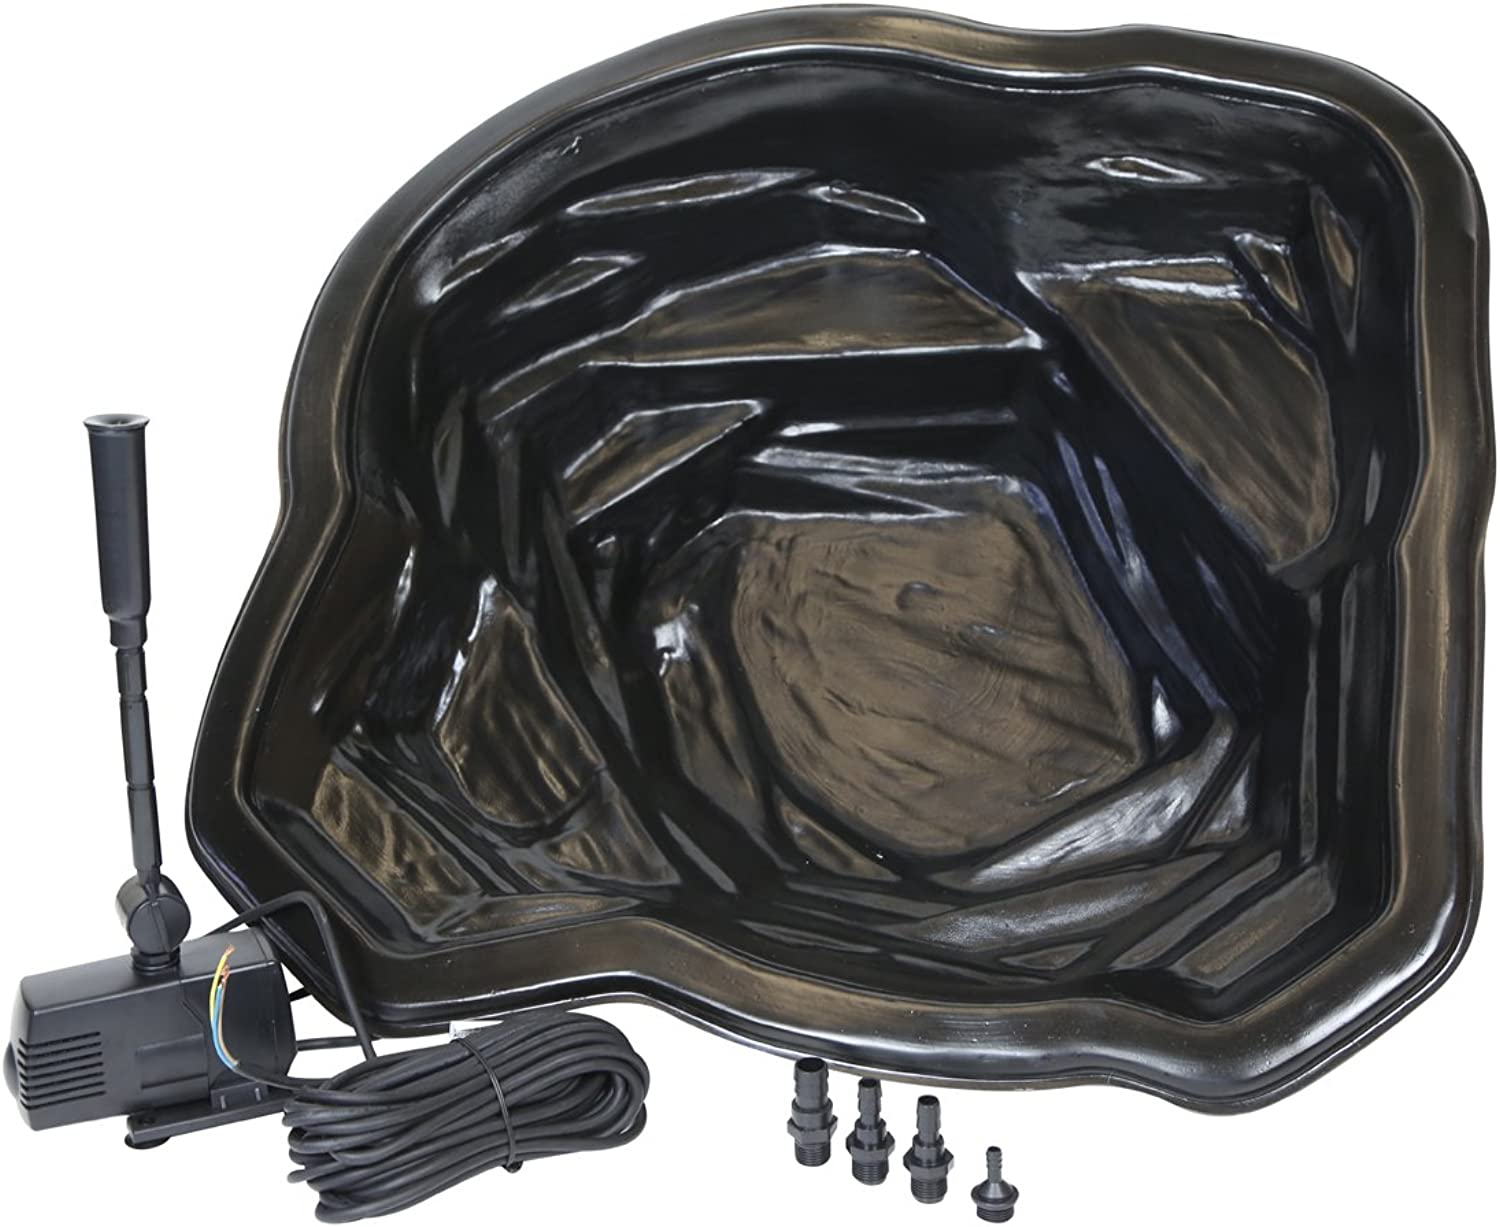 65 Litre Starter Garden Pond Kit with Quality 600 LPH Fountain Pump